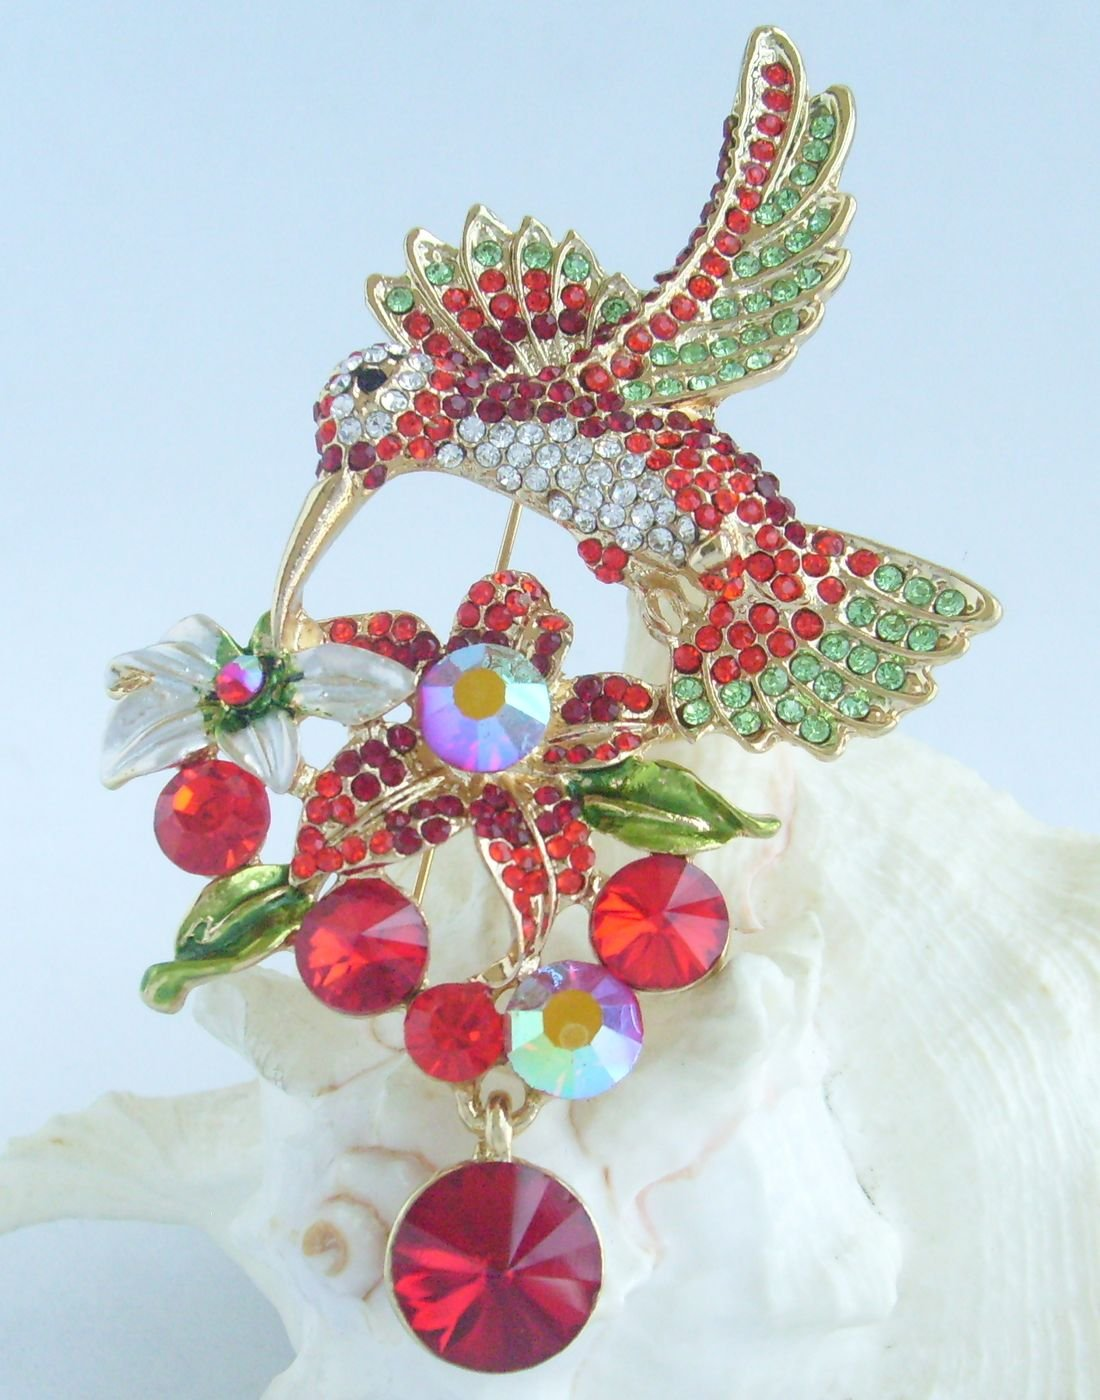 Sindary Pretty 3.54'' Animal Pendant Hummingbird Brooch Pin Rhinestone Crystal BZ6385 (Gold-Tone Red) by Animal Brooch-Sindary Jewelry (Image #4)